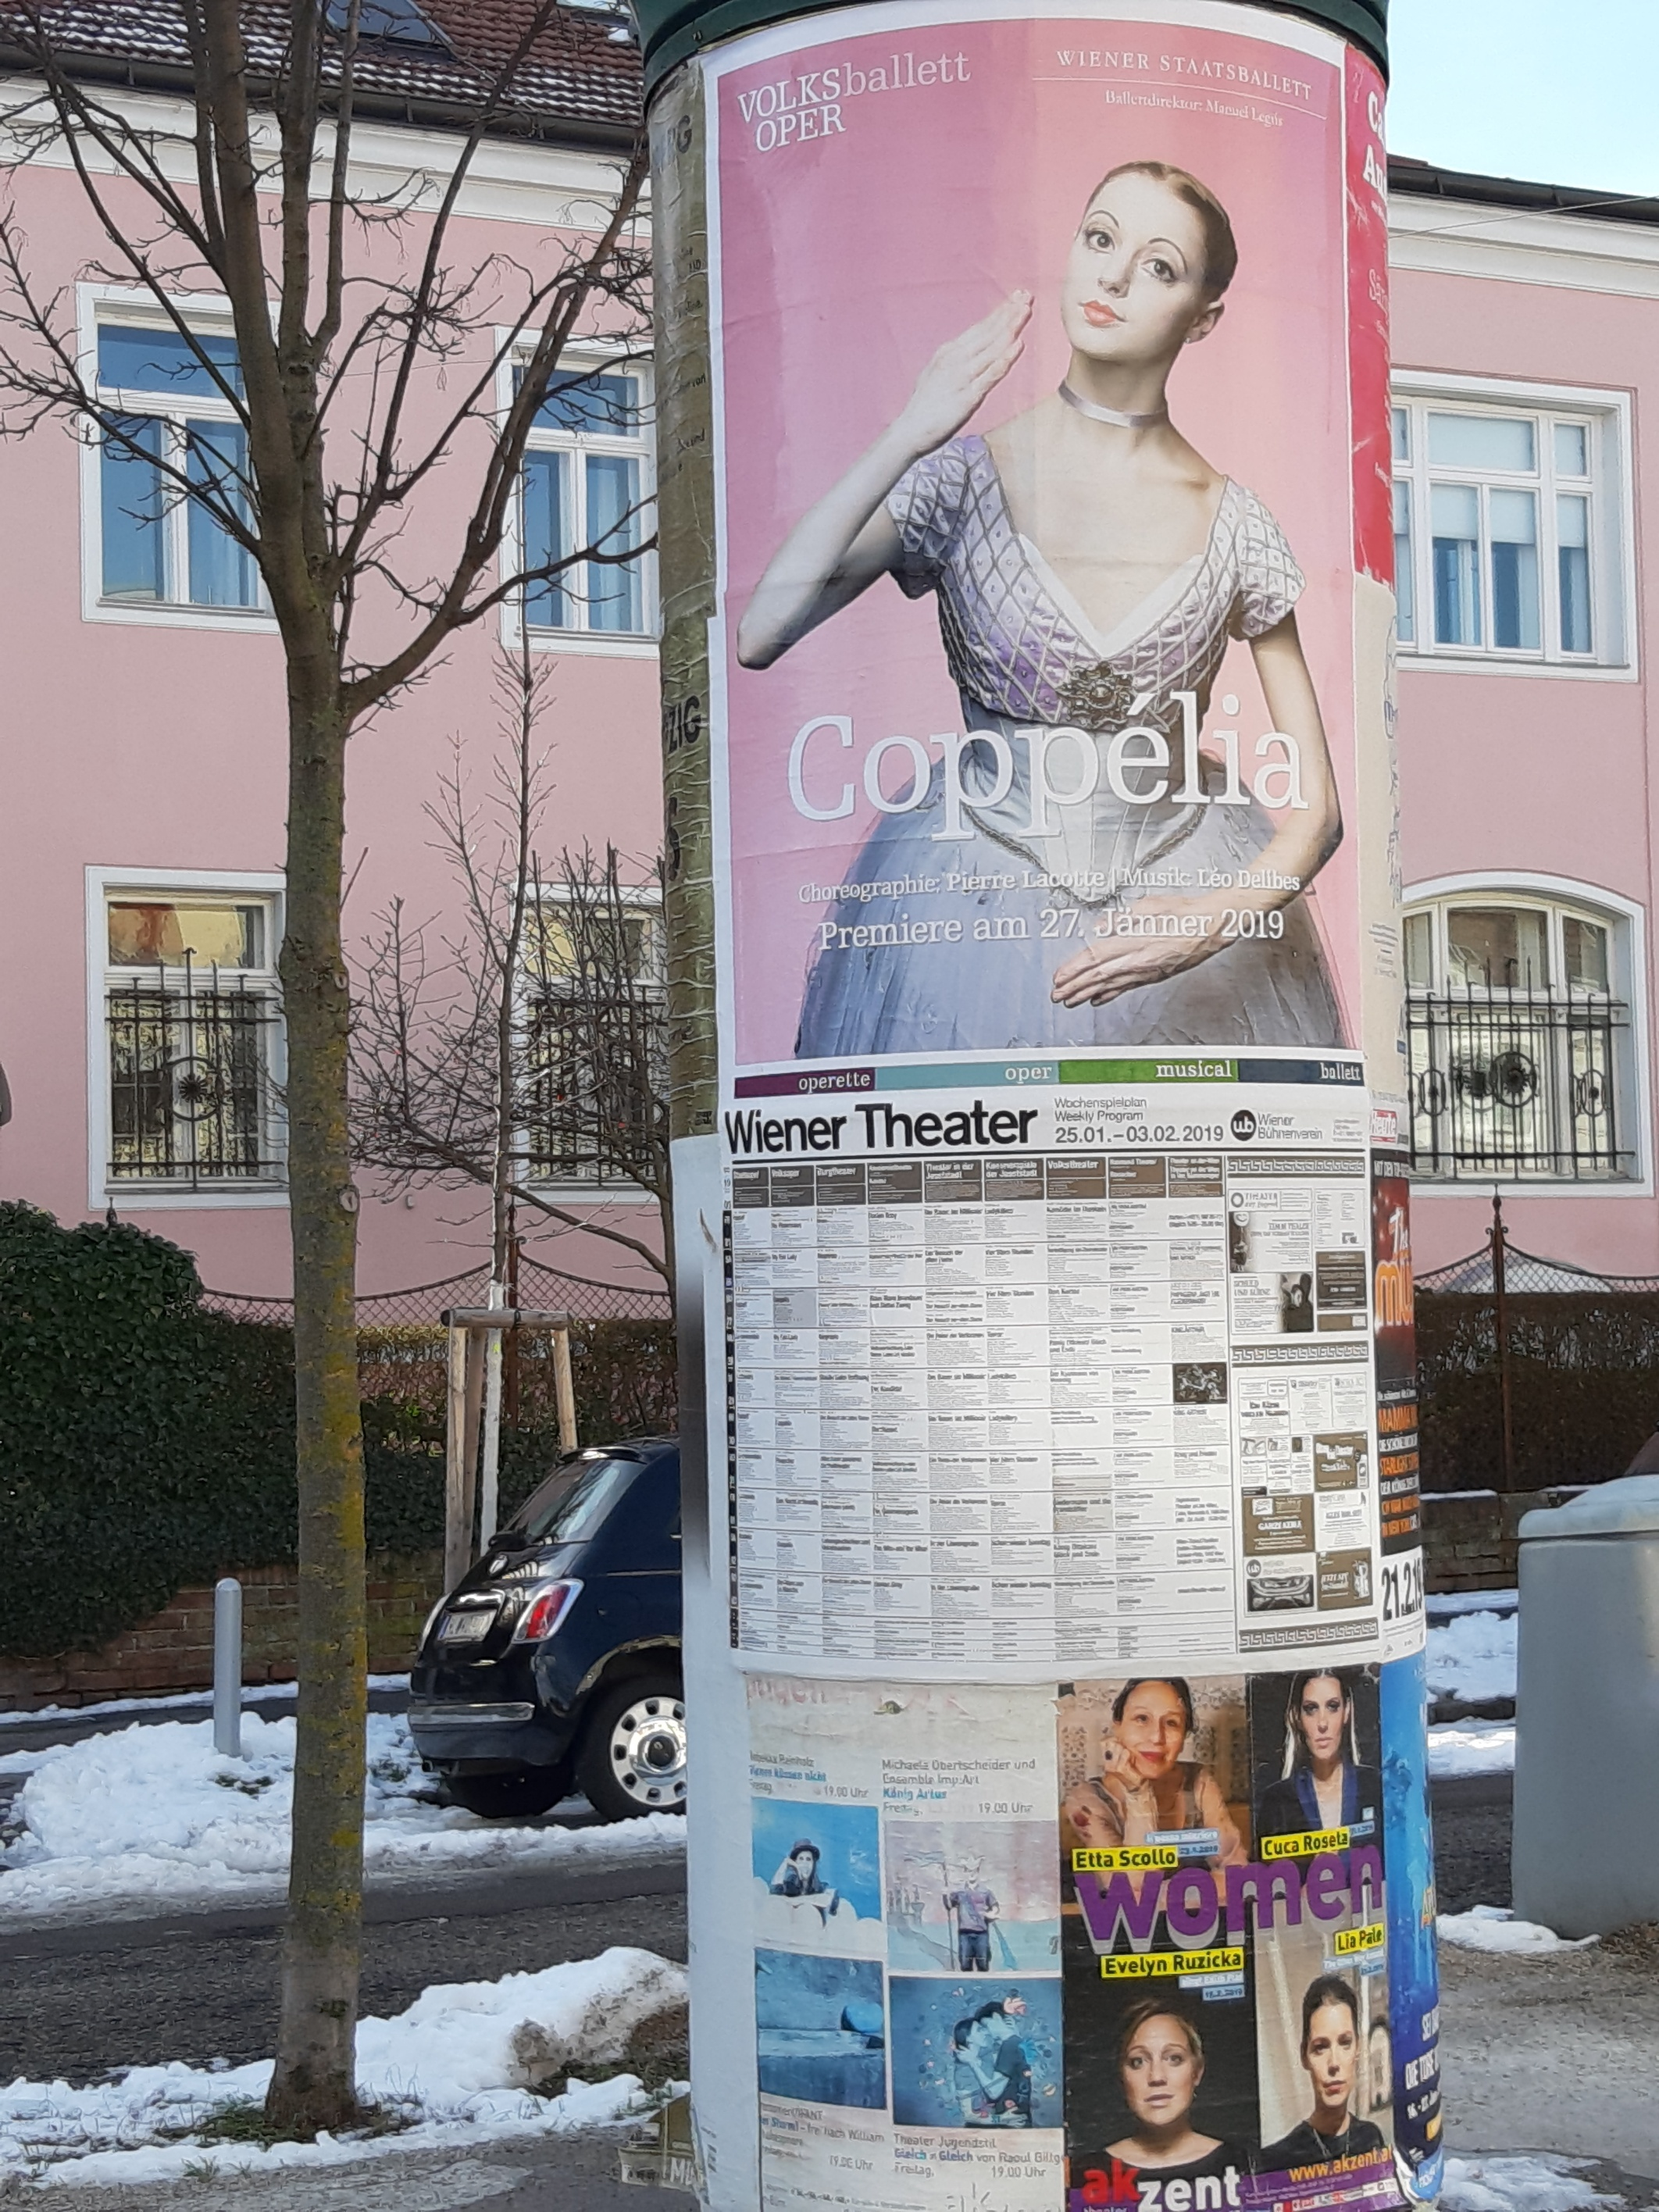 Volksoper's advertising campaign all over town (January 2019)